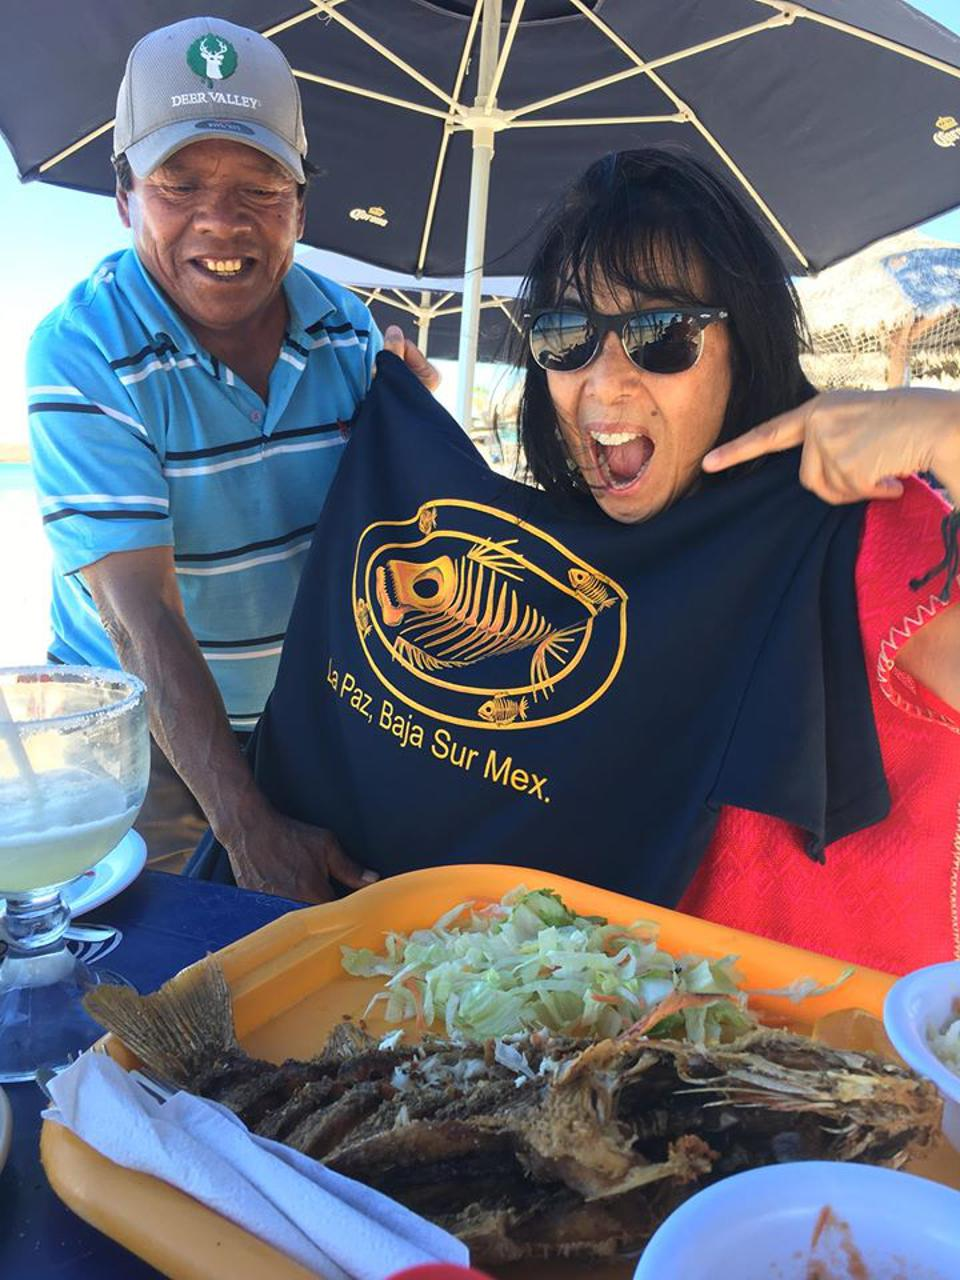 Jet Metier with street vendor at beach in Mexico